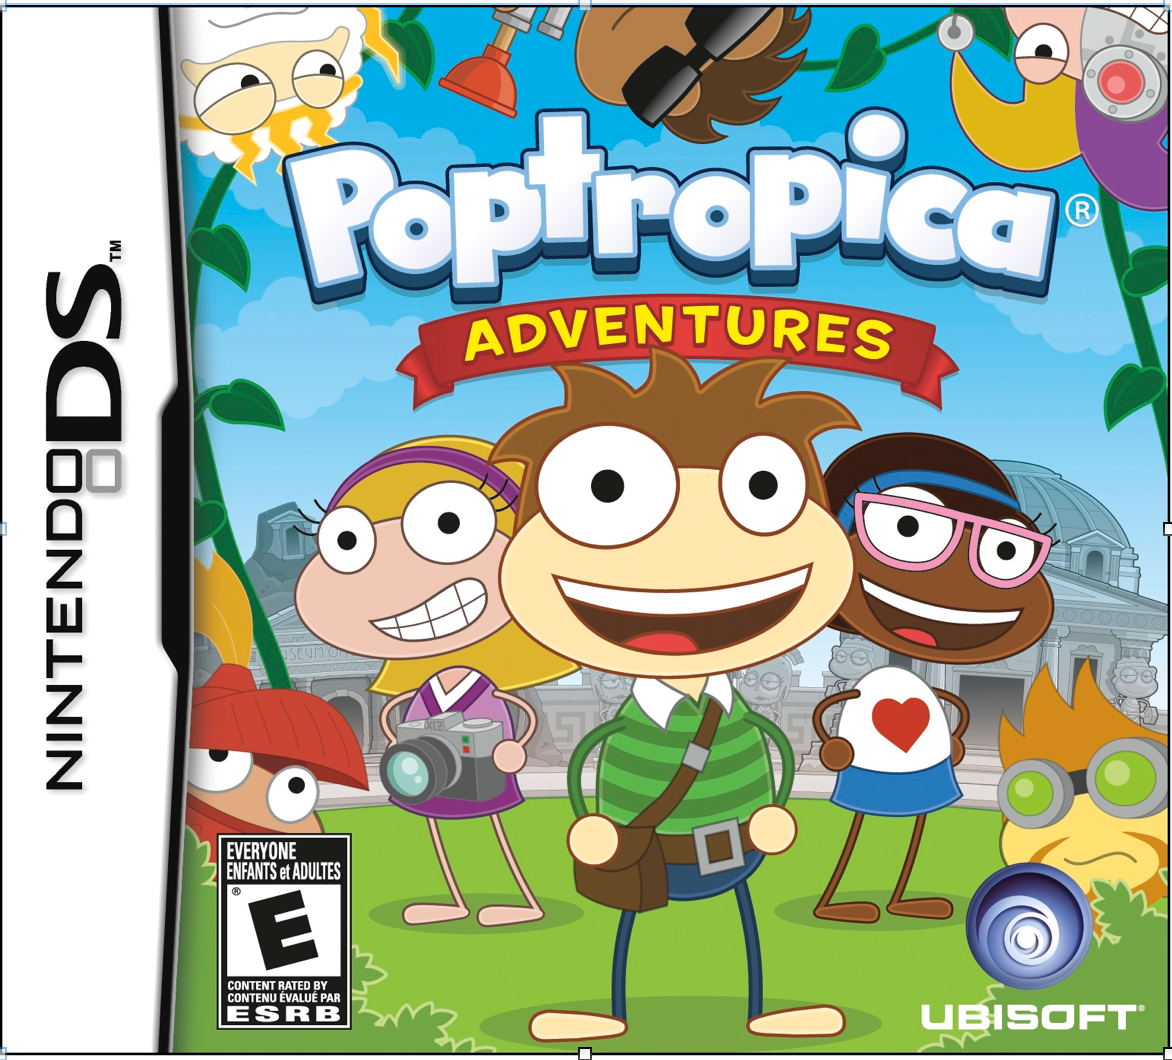 Poptropica from Ubisoft